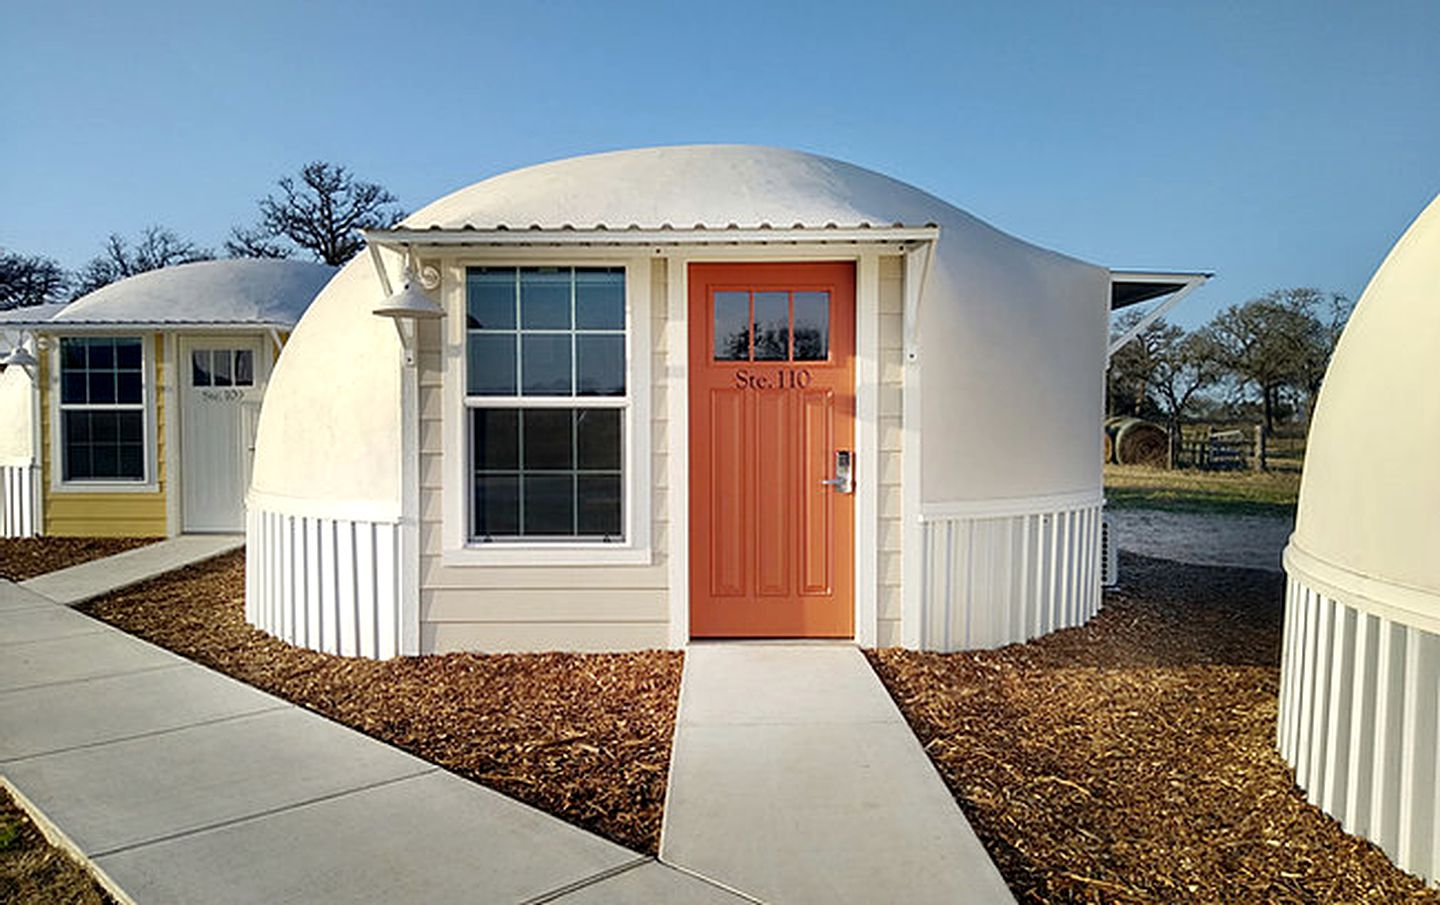 Dome accommodation for glamping near Houston